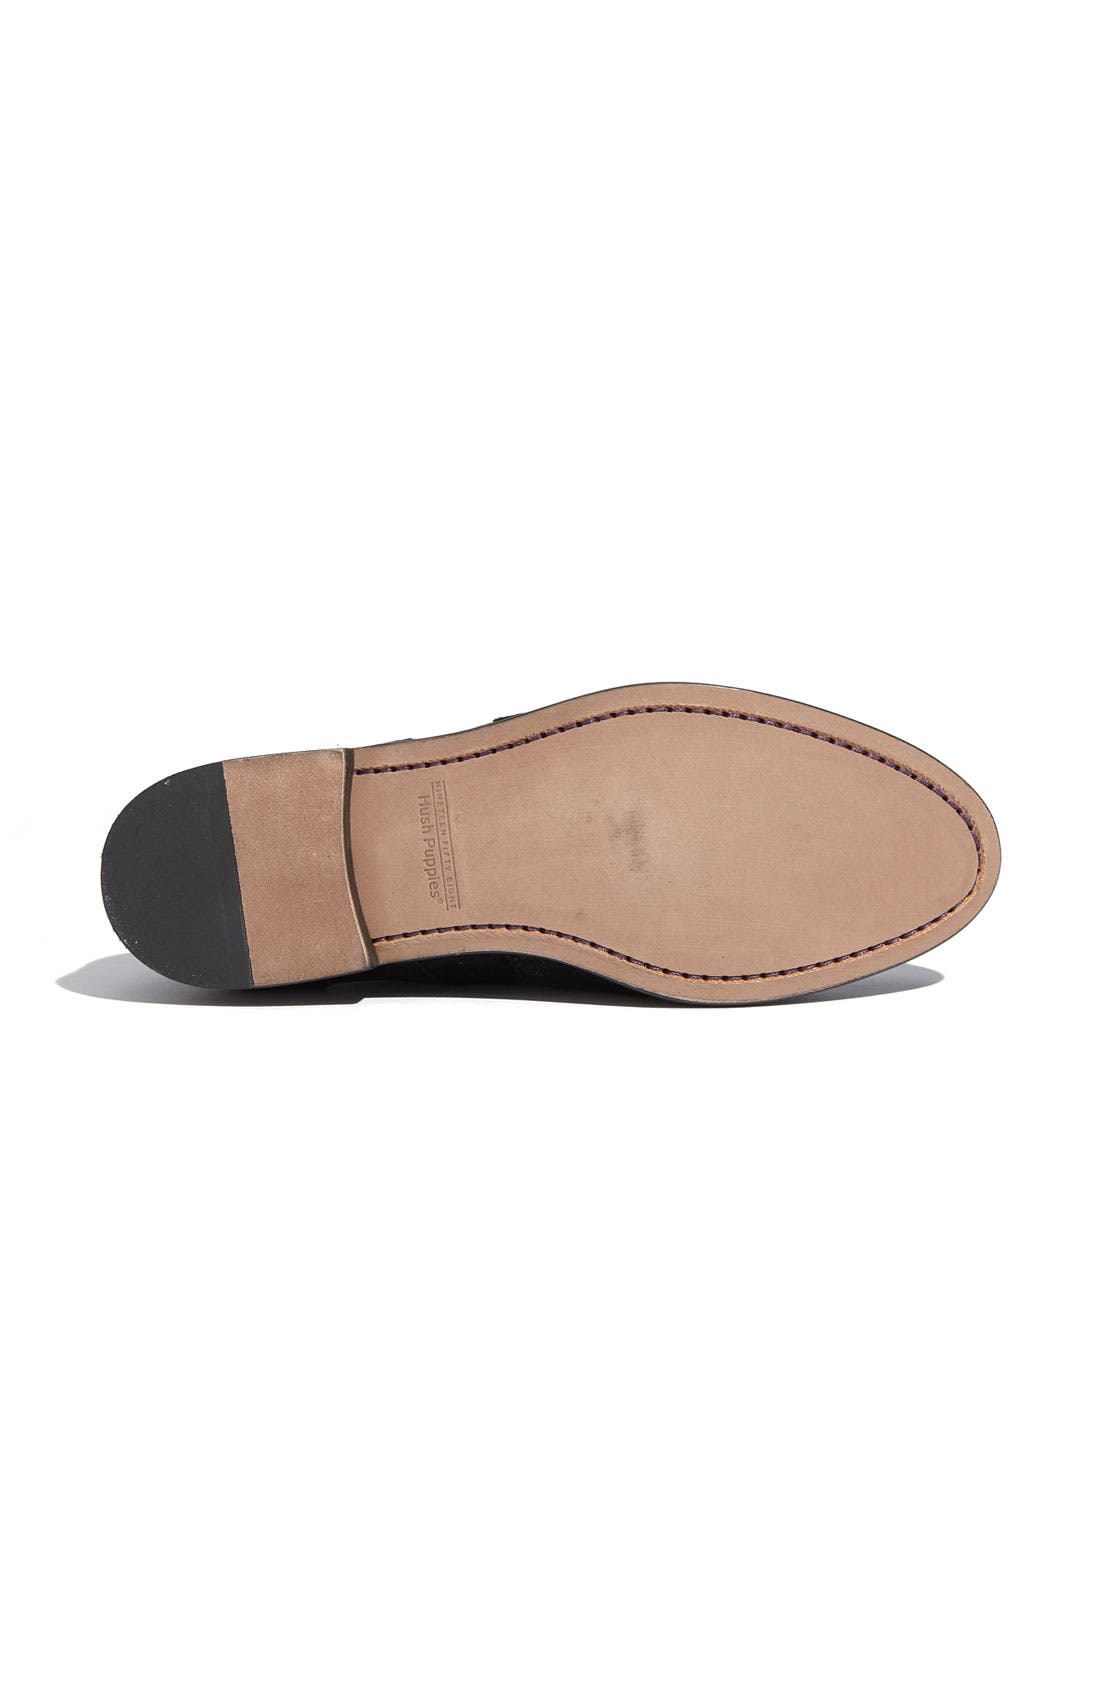 Anna Sui for Hush Puppies<sup>®</sup> 'Lindley' Oxford,                             Alternate thumbnail 4, color,                             001